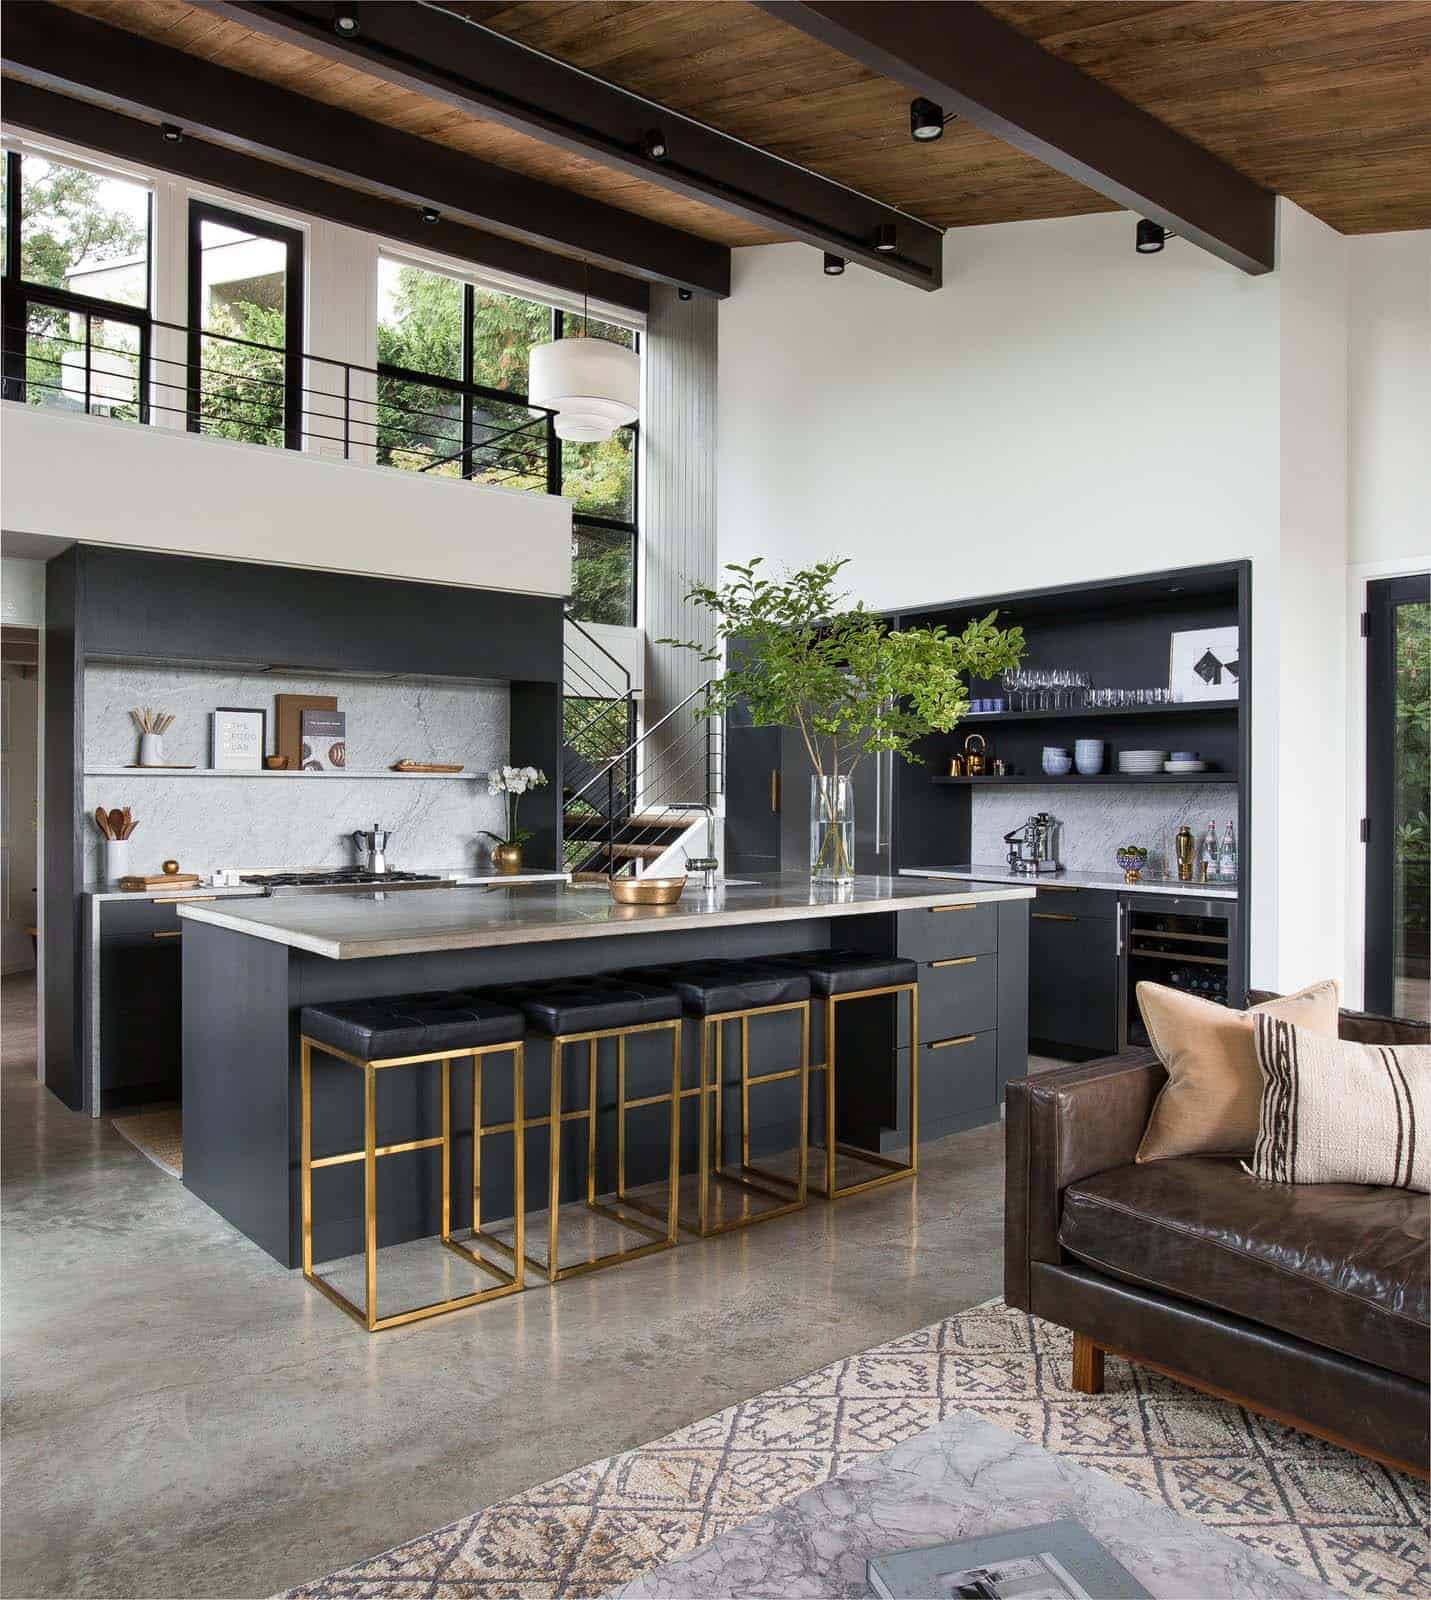 Design For Living Room With Open Kitchen Houzz Home Design: Chic Midcentury Modern Renovation Surrounded By Woods In